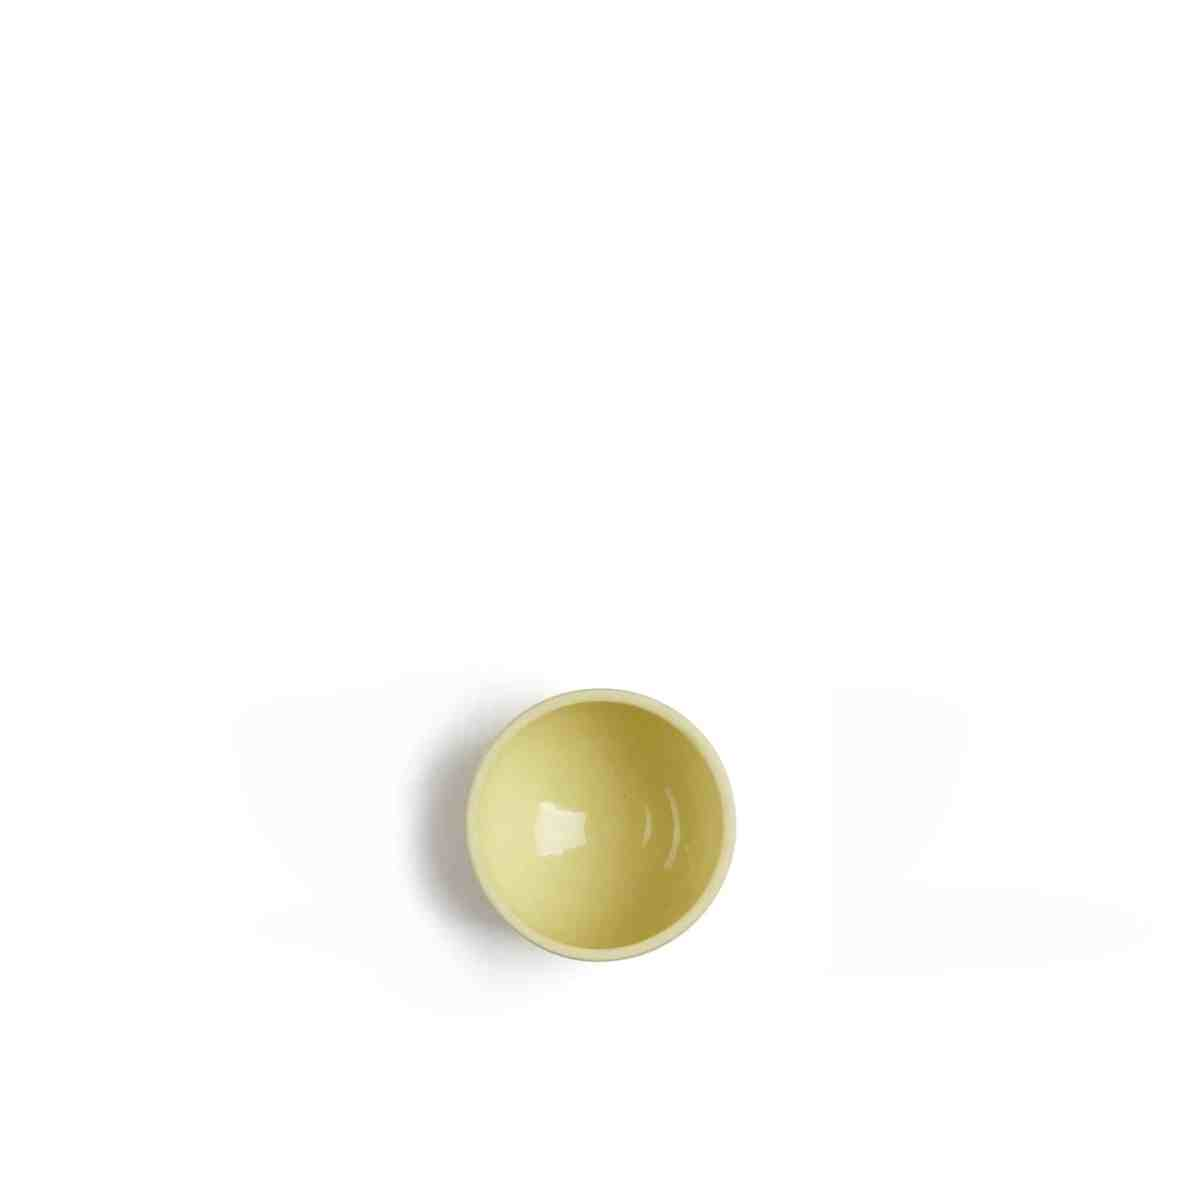 luke-eastop-yellow-crucible-small-another-country-002